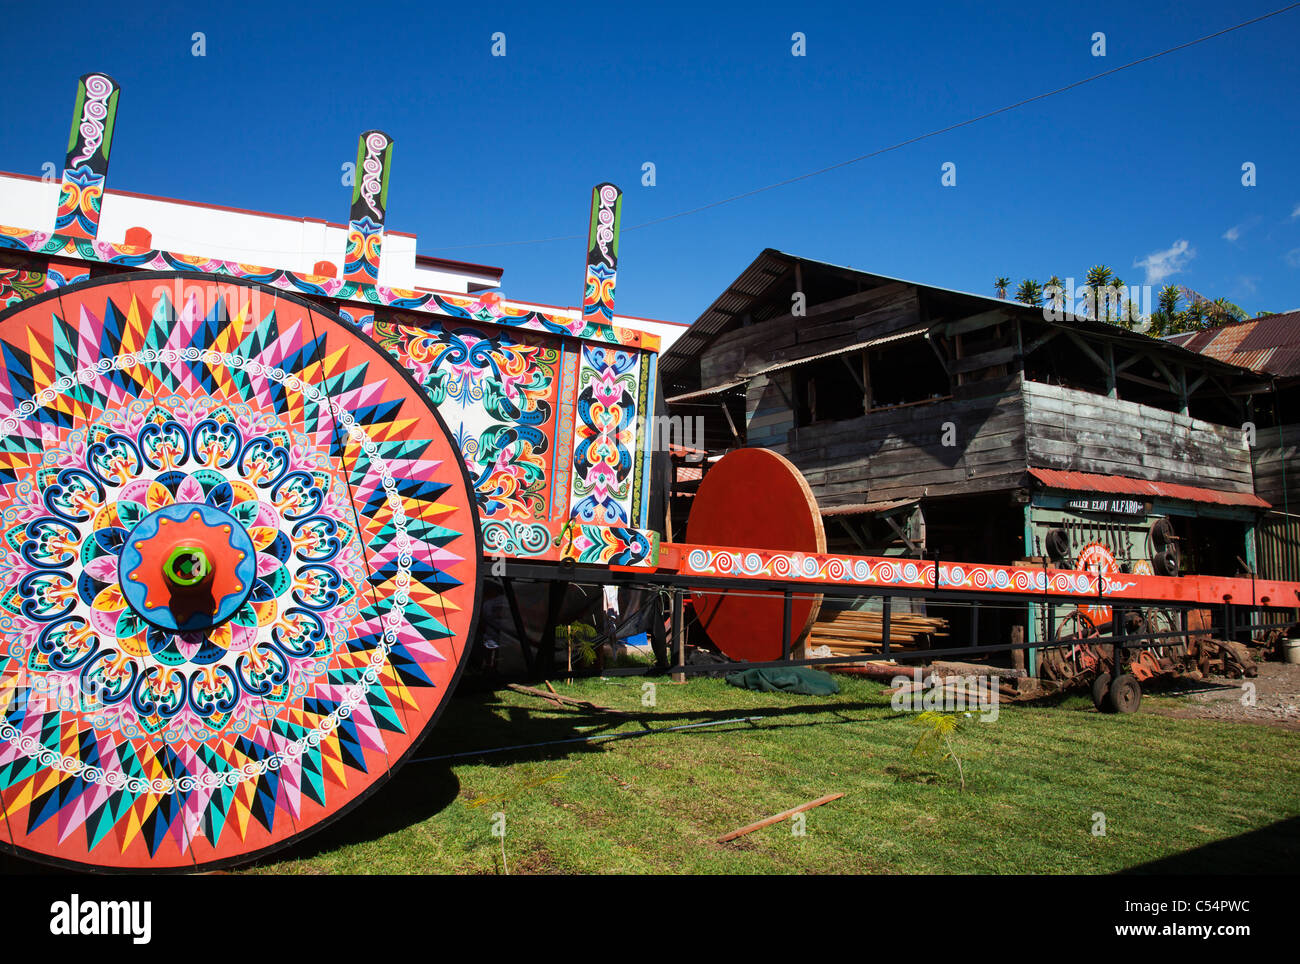 The world's biggest oxcart Costa Rica - Stock Image